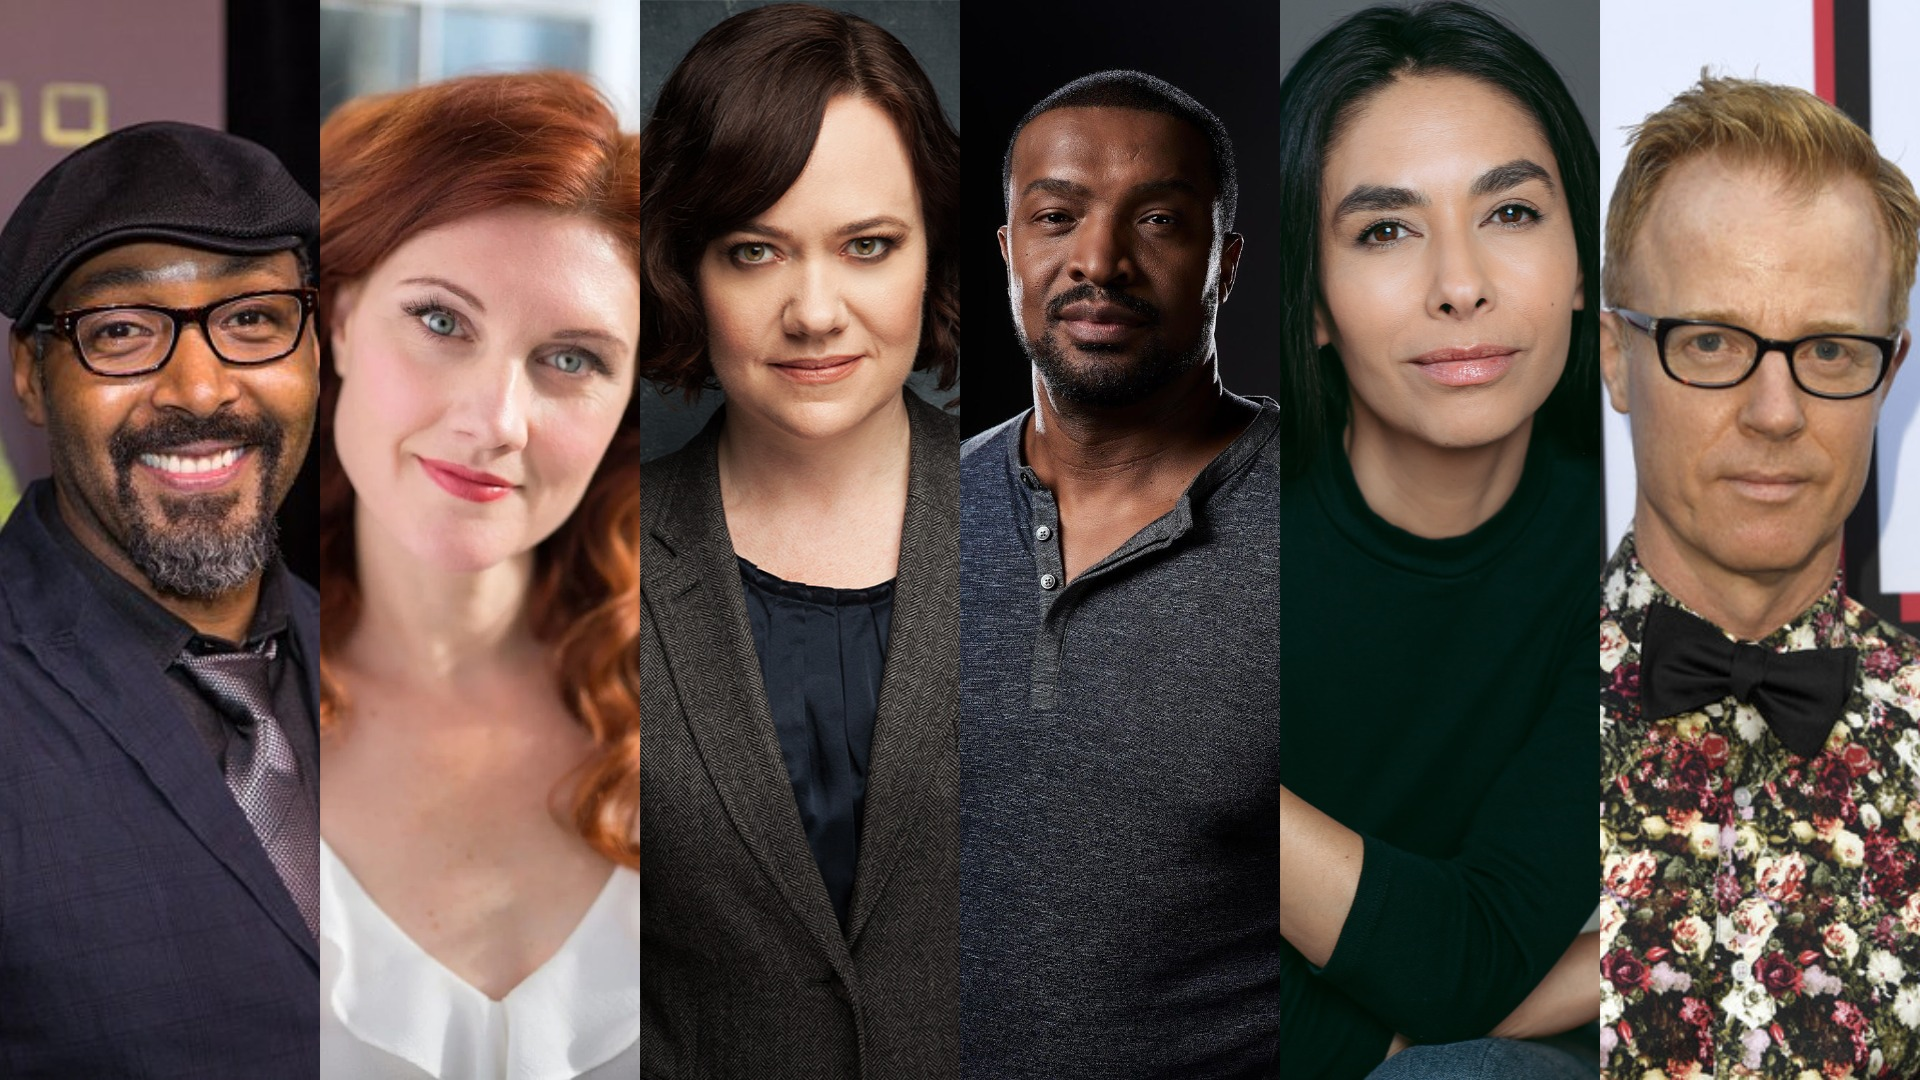 Deadline is reporting that Jesse L. Martin, Michelle Harrison, Bronwen Smith, Roger Cross, Carmen Moore and David Lewis are set to star in Re:Uniting, a drama film from Vancouver-based Flat Head Films.